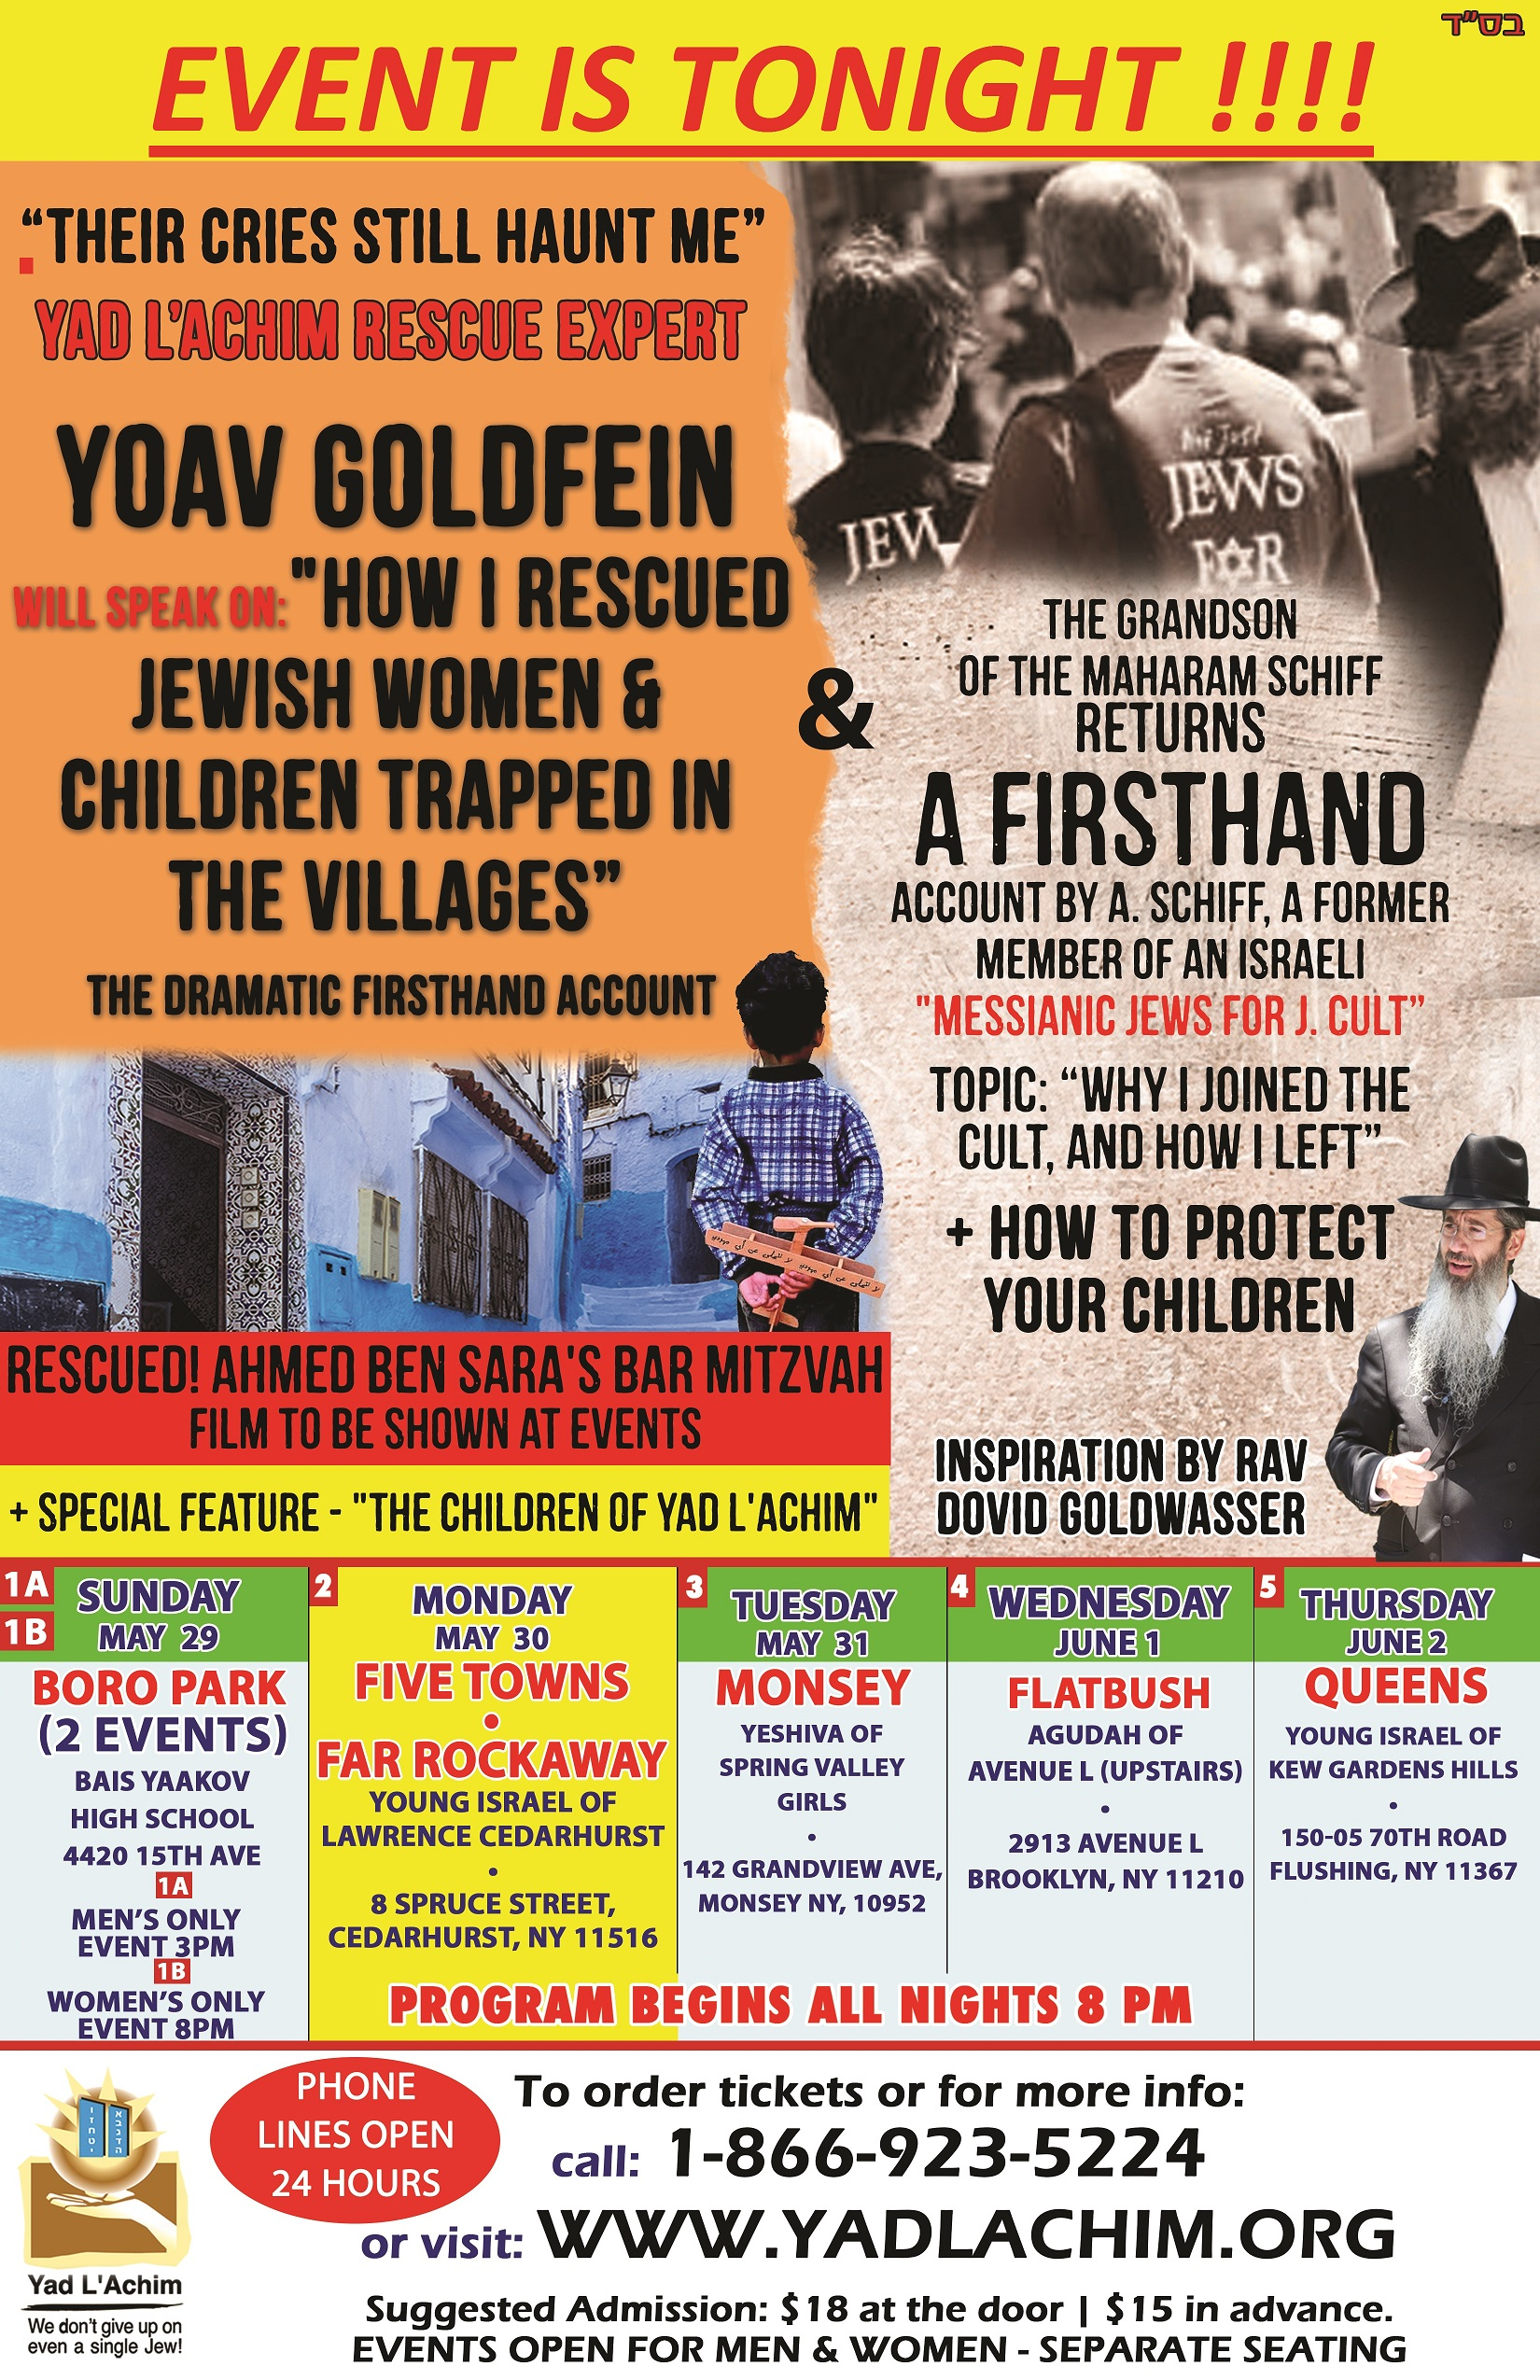 Tonight in 5 towns tom in monsey arab village rescuer - Young israel of kew garden hills ...